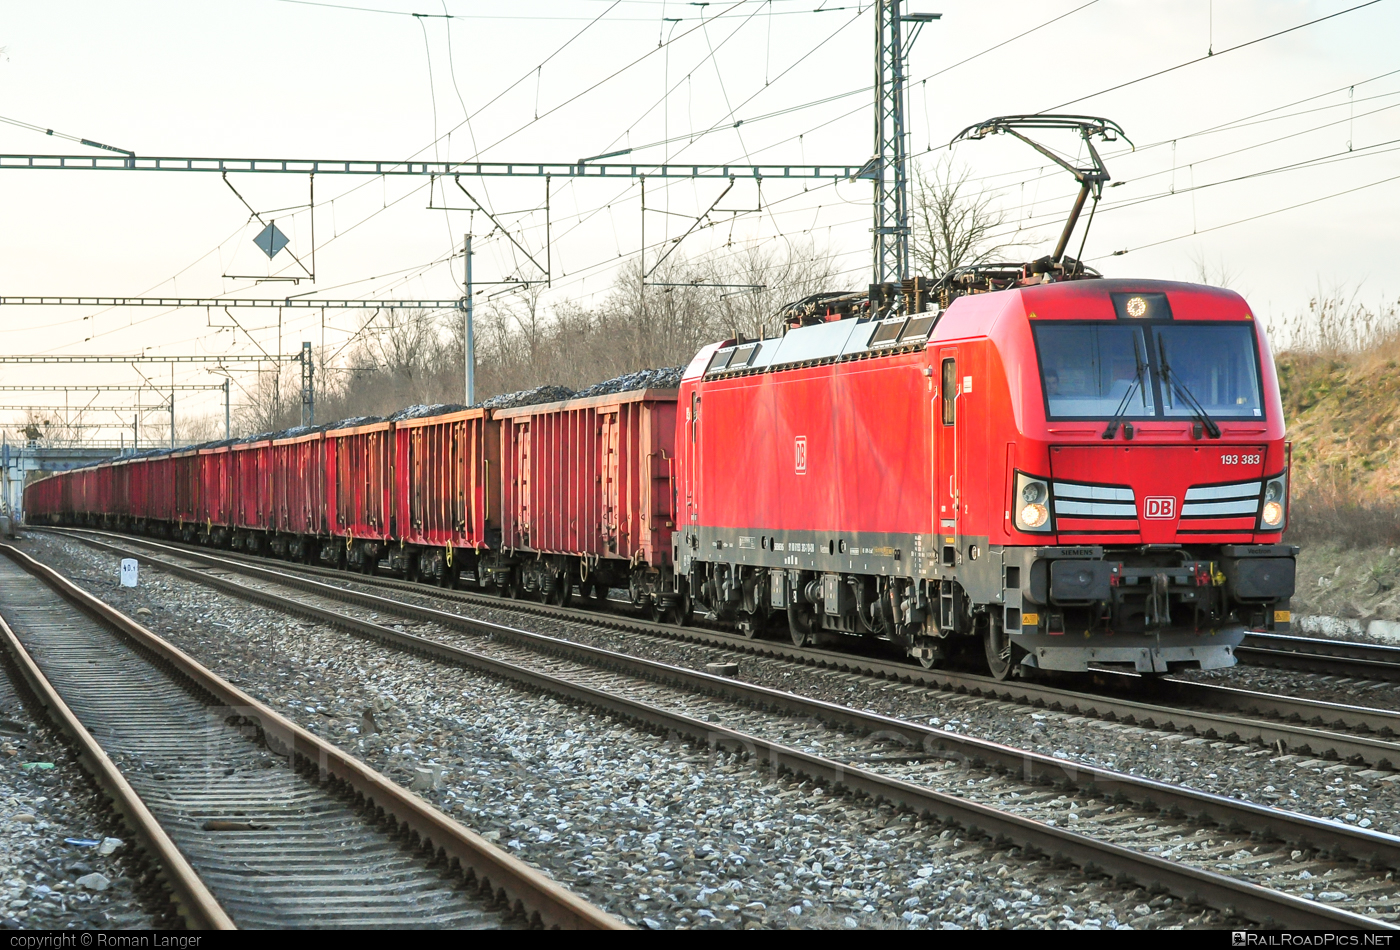 Siemens Vectron MS - 193 383 operated by DB Cargo Czechia s.r.o. #db #dbcargo #dbcargoczechia #siemens #siemensvectron #siemensvectronms #vectron #vectronms